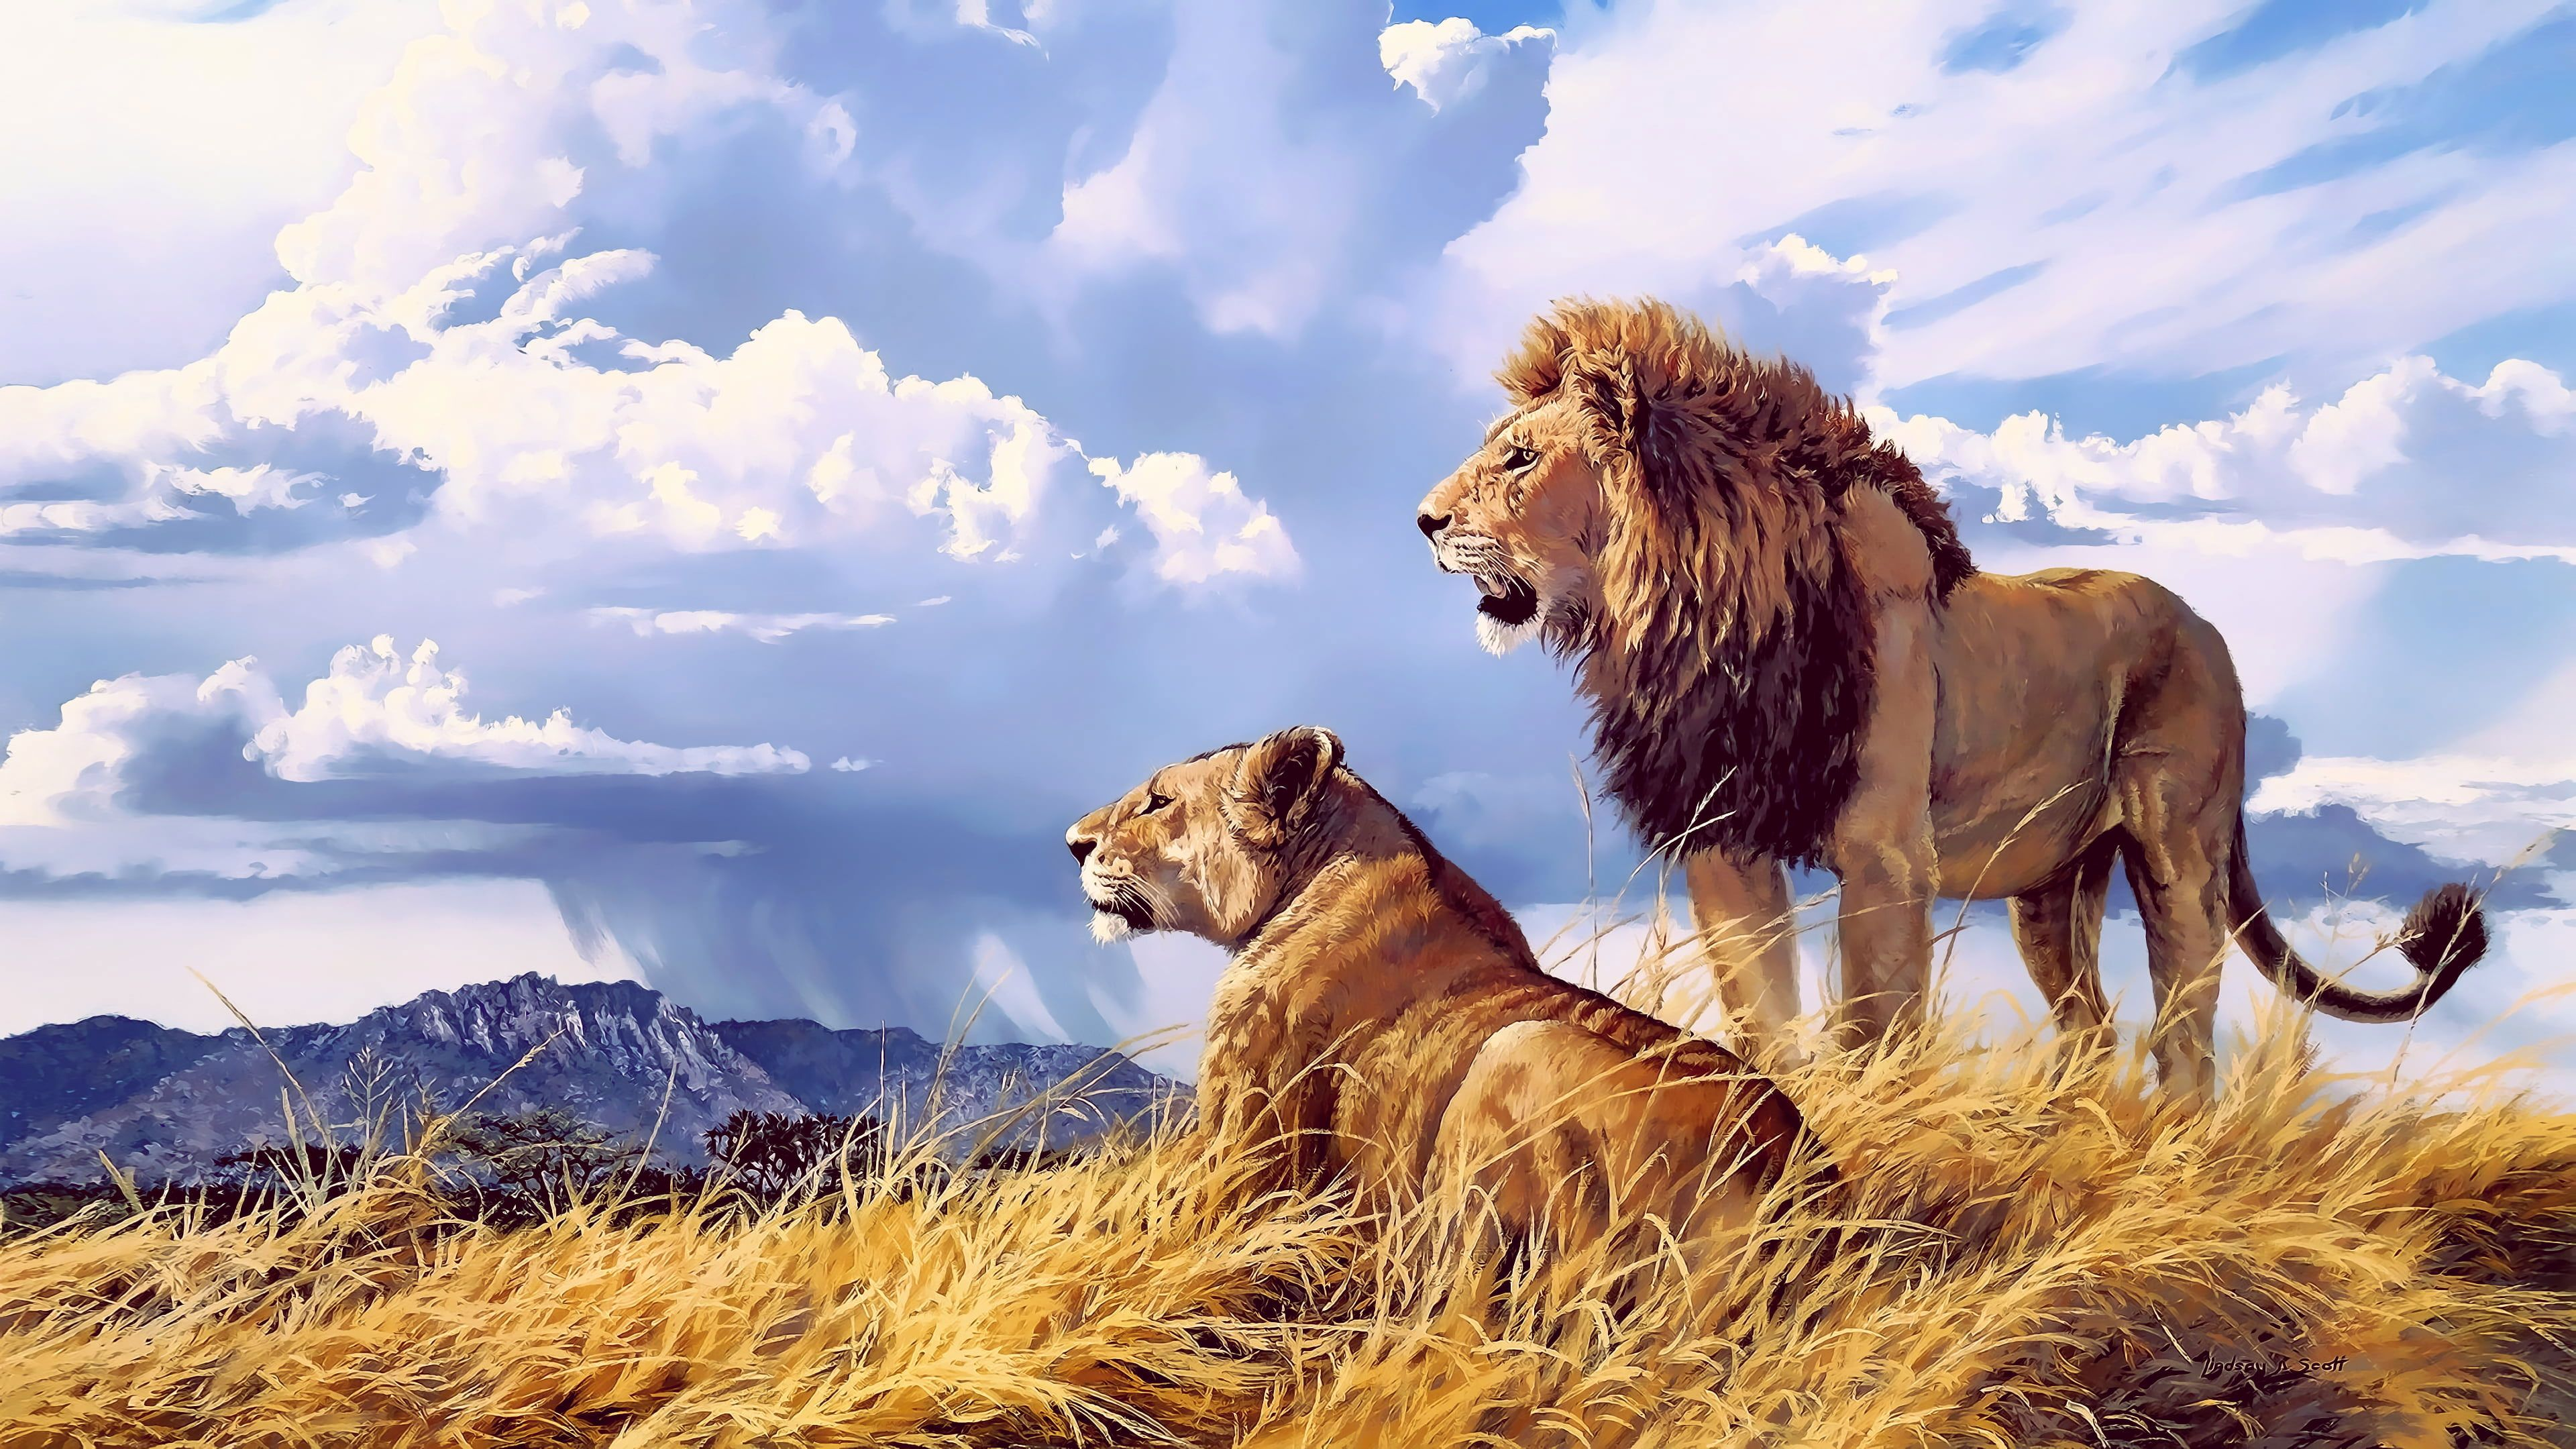 Lion And Lioness Wallpaper Animals Artwork Nature Big Cats Clouds Lion Hd Wallpaper Wild Animal Wallpaper Lion Images